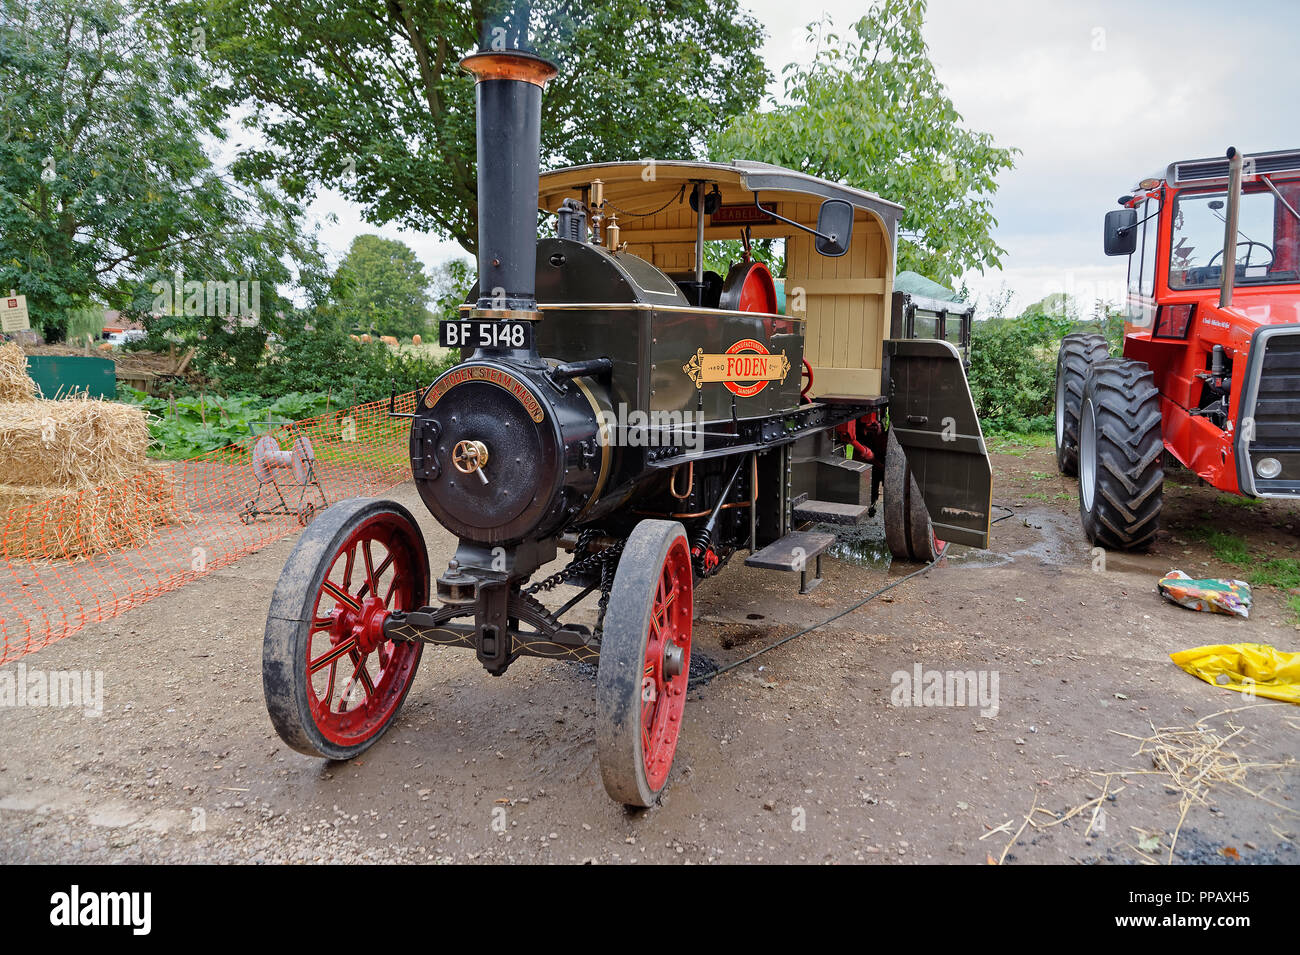 1907 Foden Steam Wagon named Isabella - Stock Image